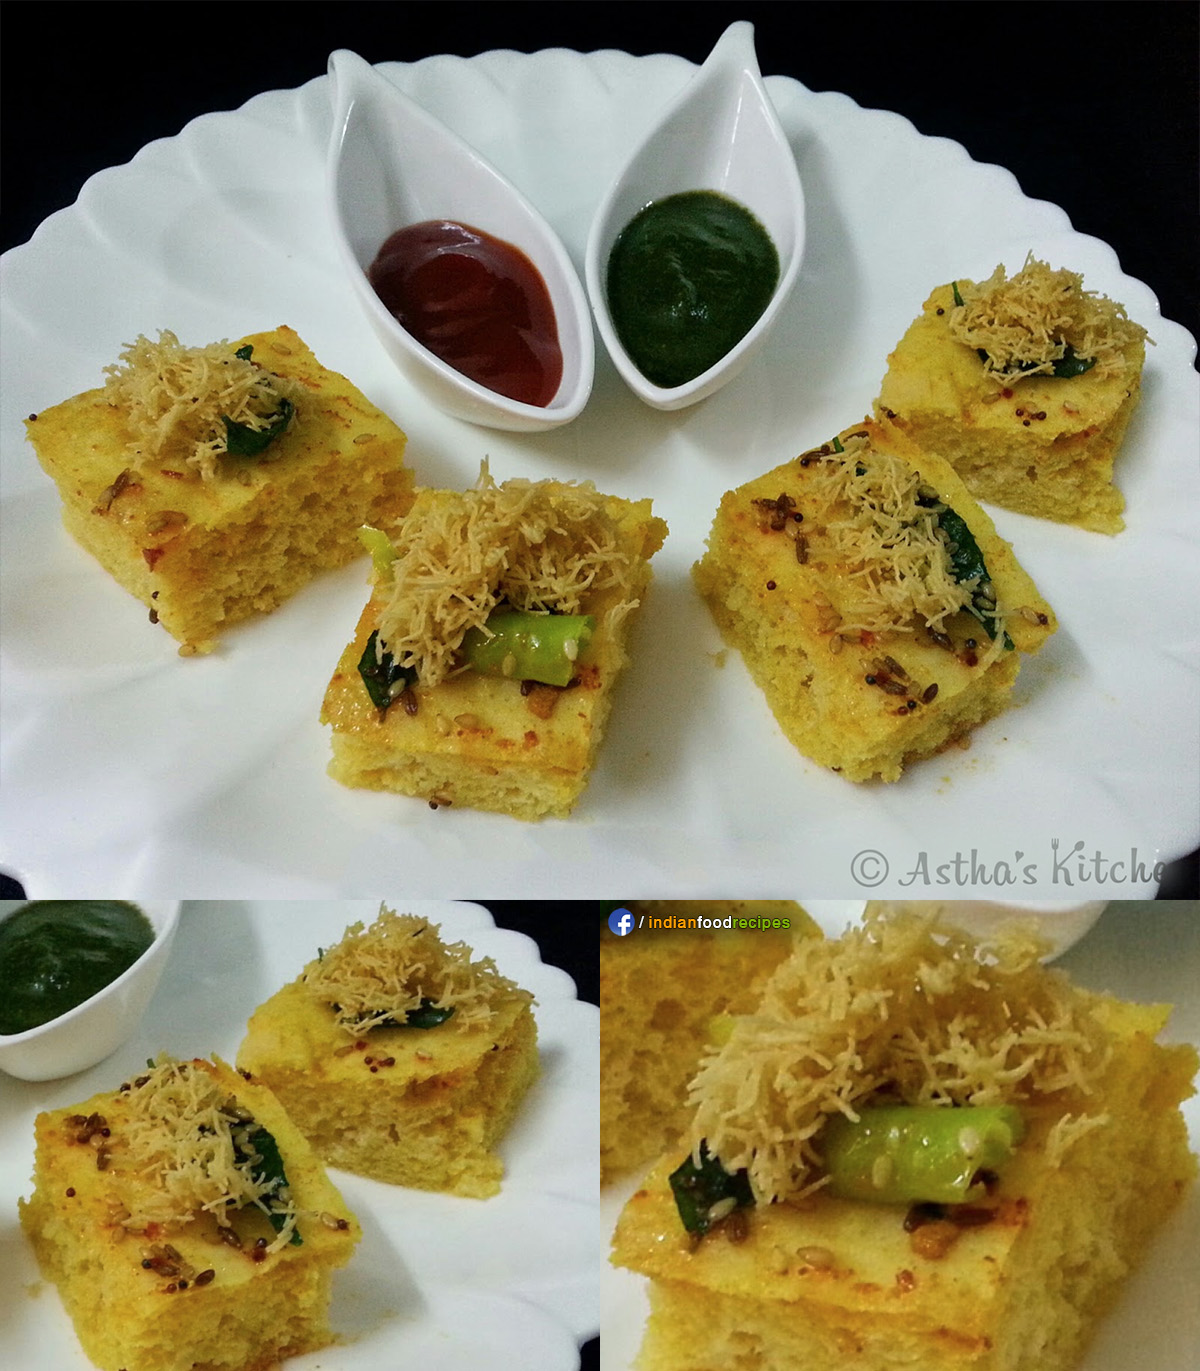 Khaman dhokla recipe step by step indian food recipes khaman dhokla recipe step by step forumfinder Gallery